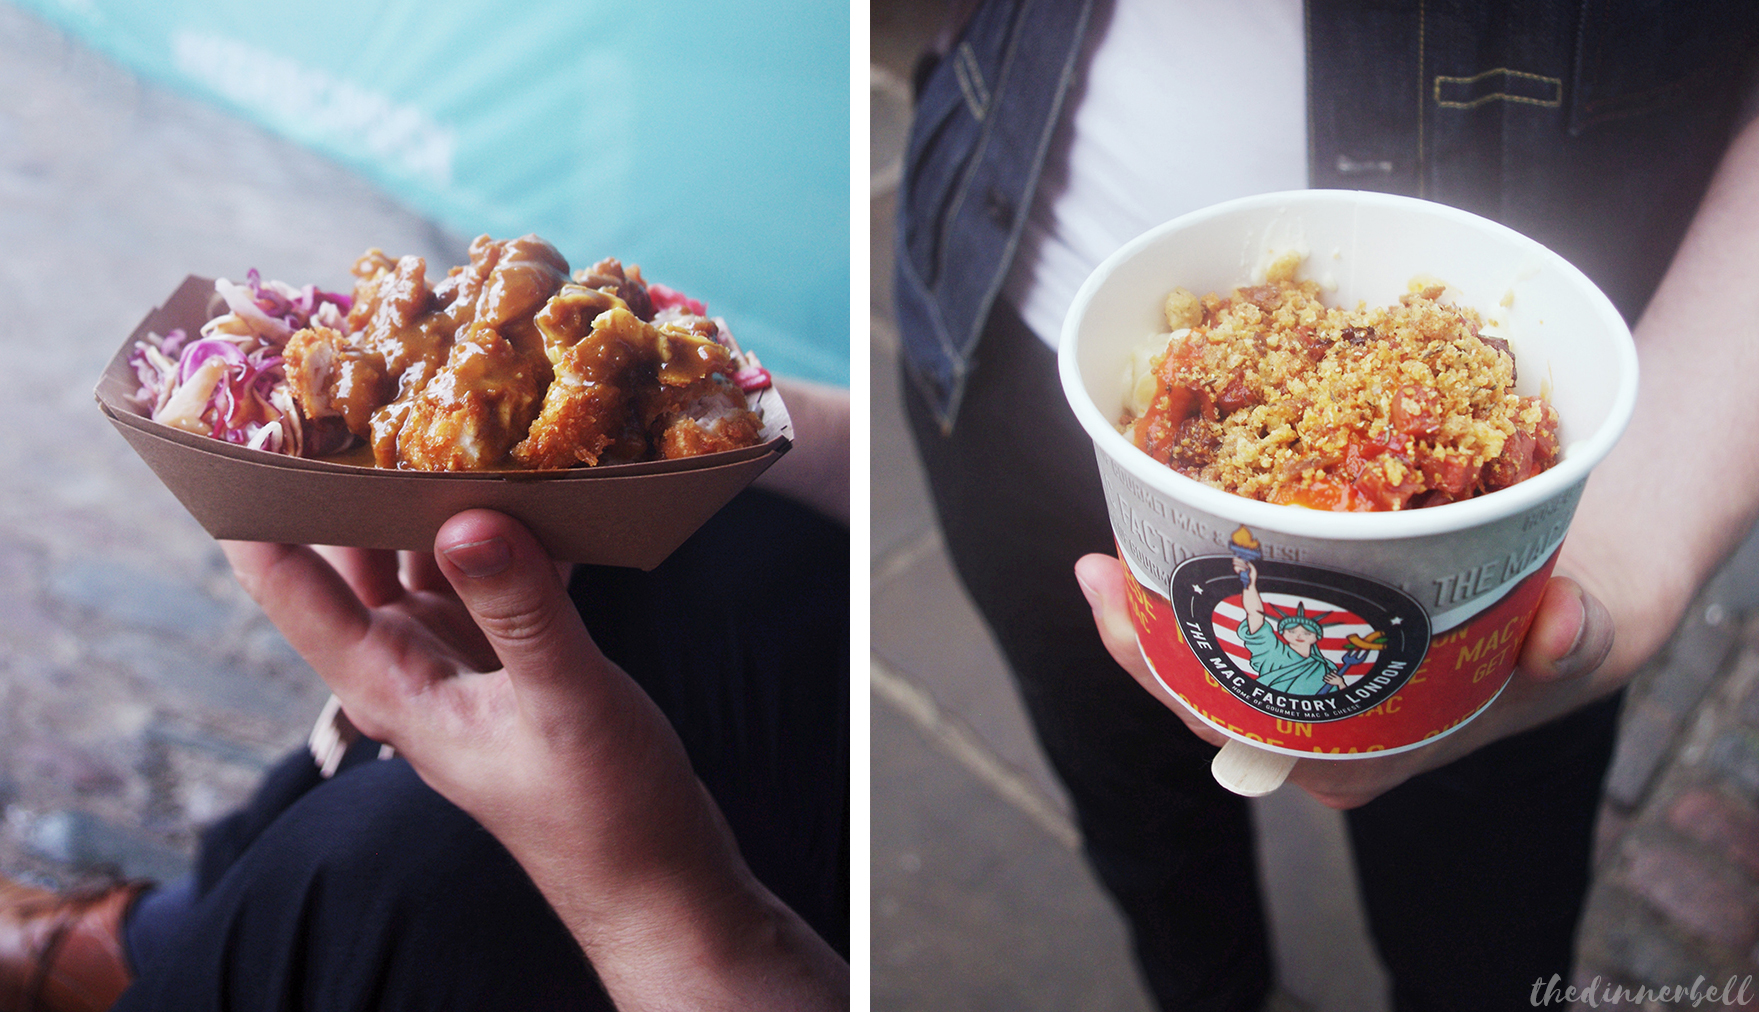 Eating out: KERB Camden, London - Yu Kyu and The Mac Factory // The Dinner Bell